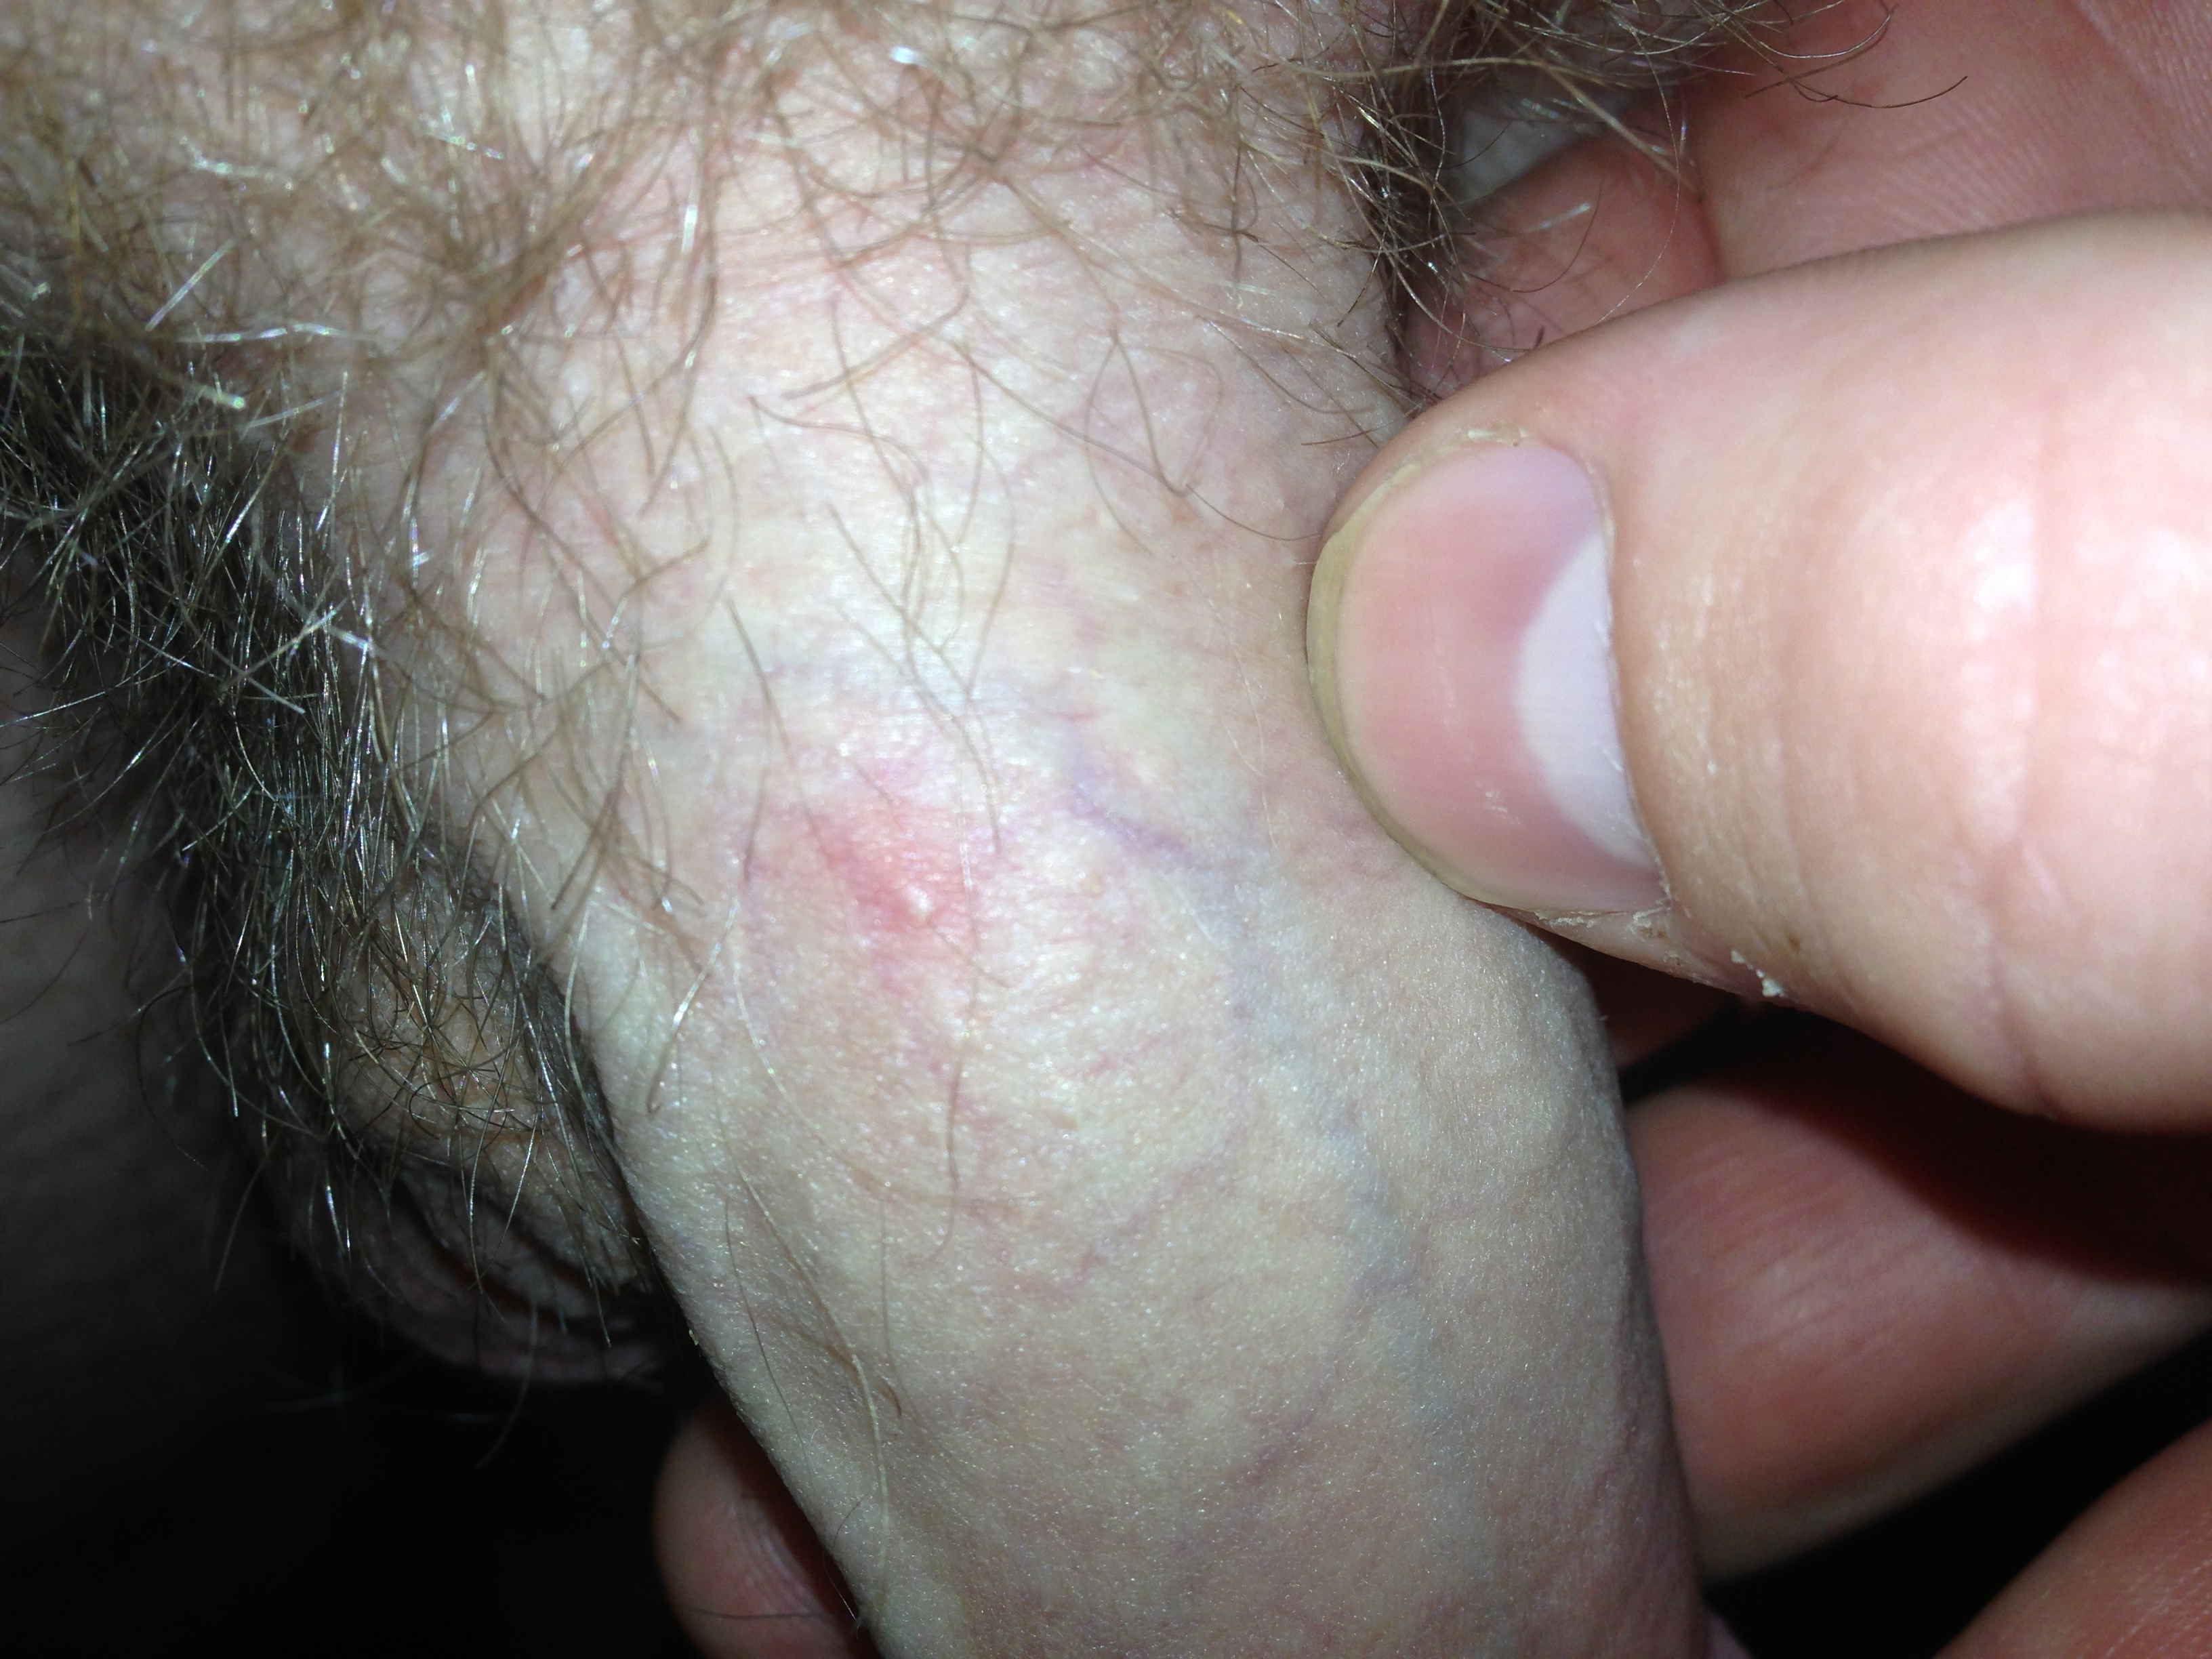 Pimple on Penis - Penile Pimple Causes - STD Test Express